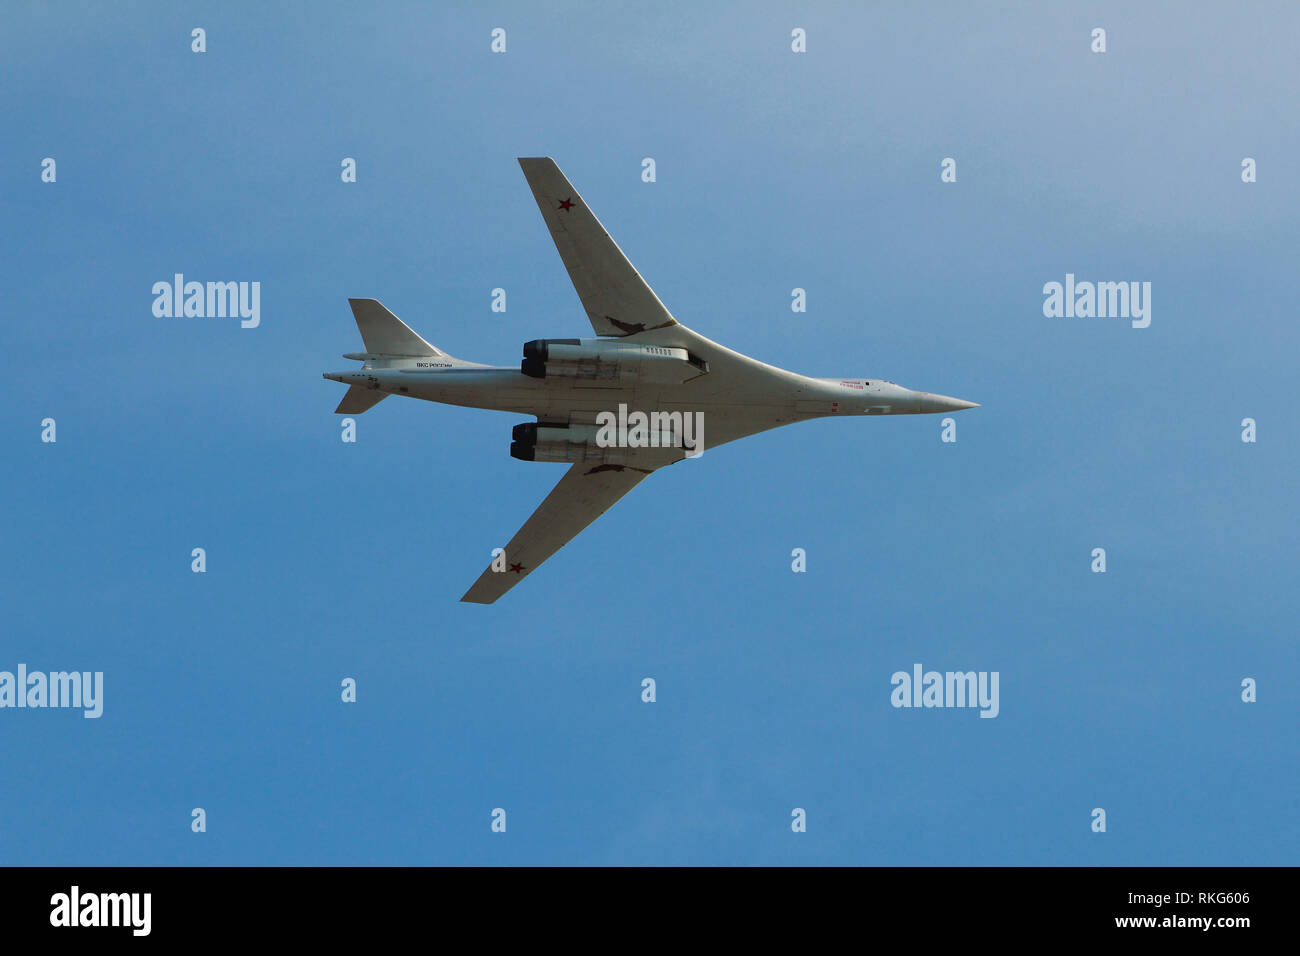 Kazan, Russia - Aug 10, 2018: TU-160 plane in flight Stock Photo